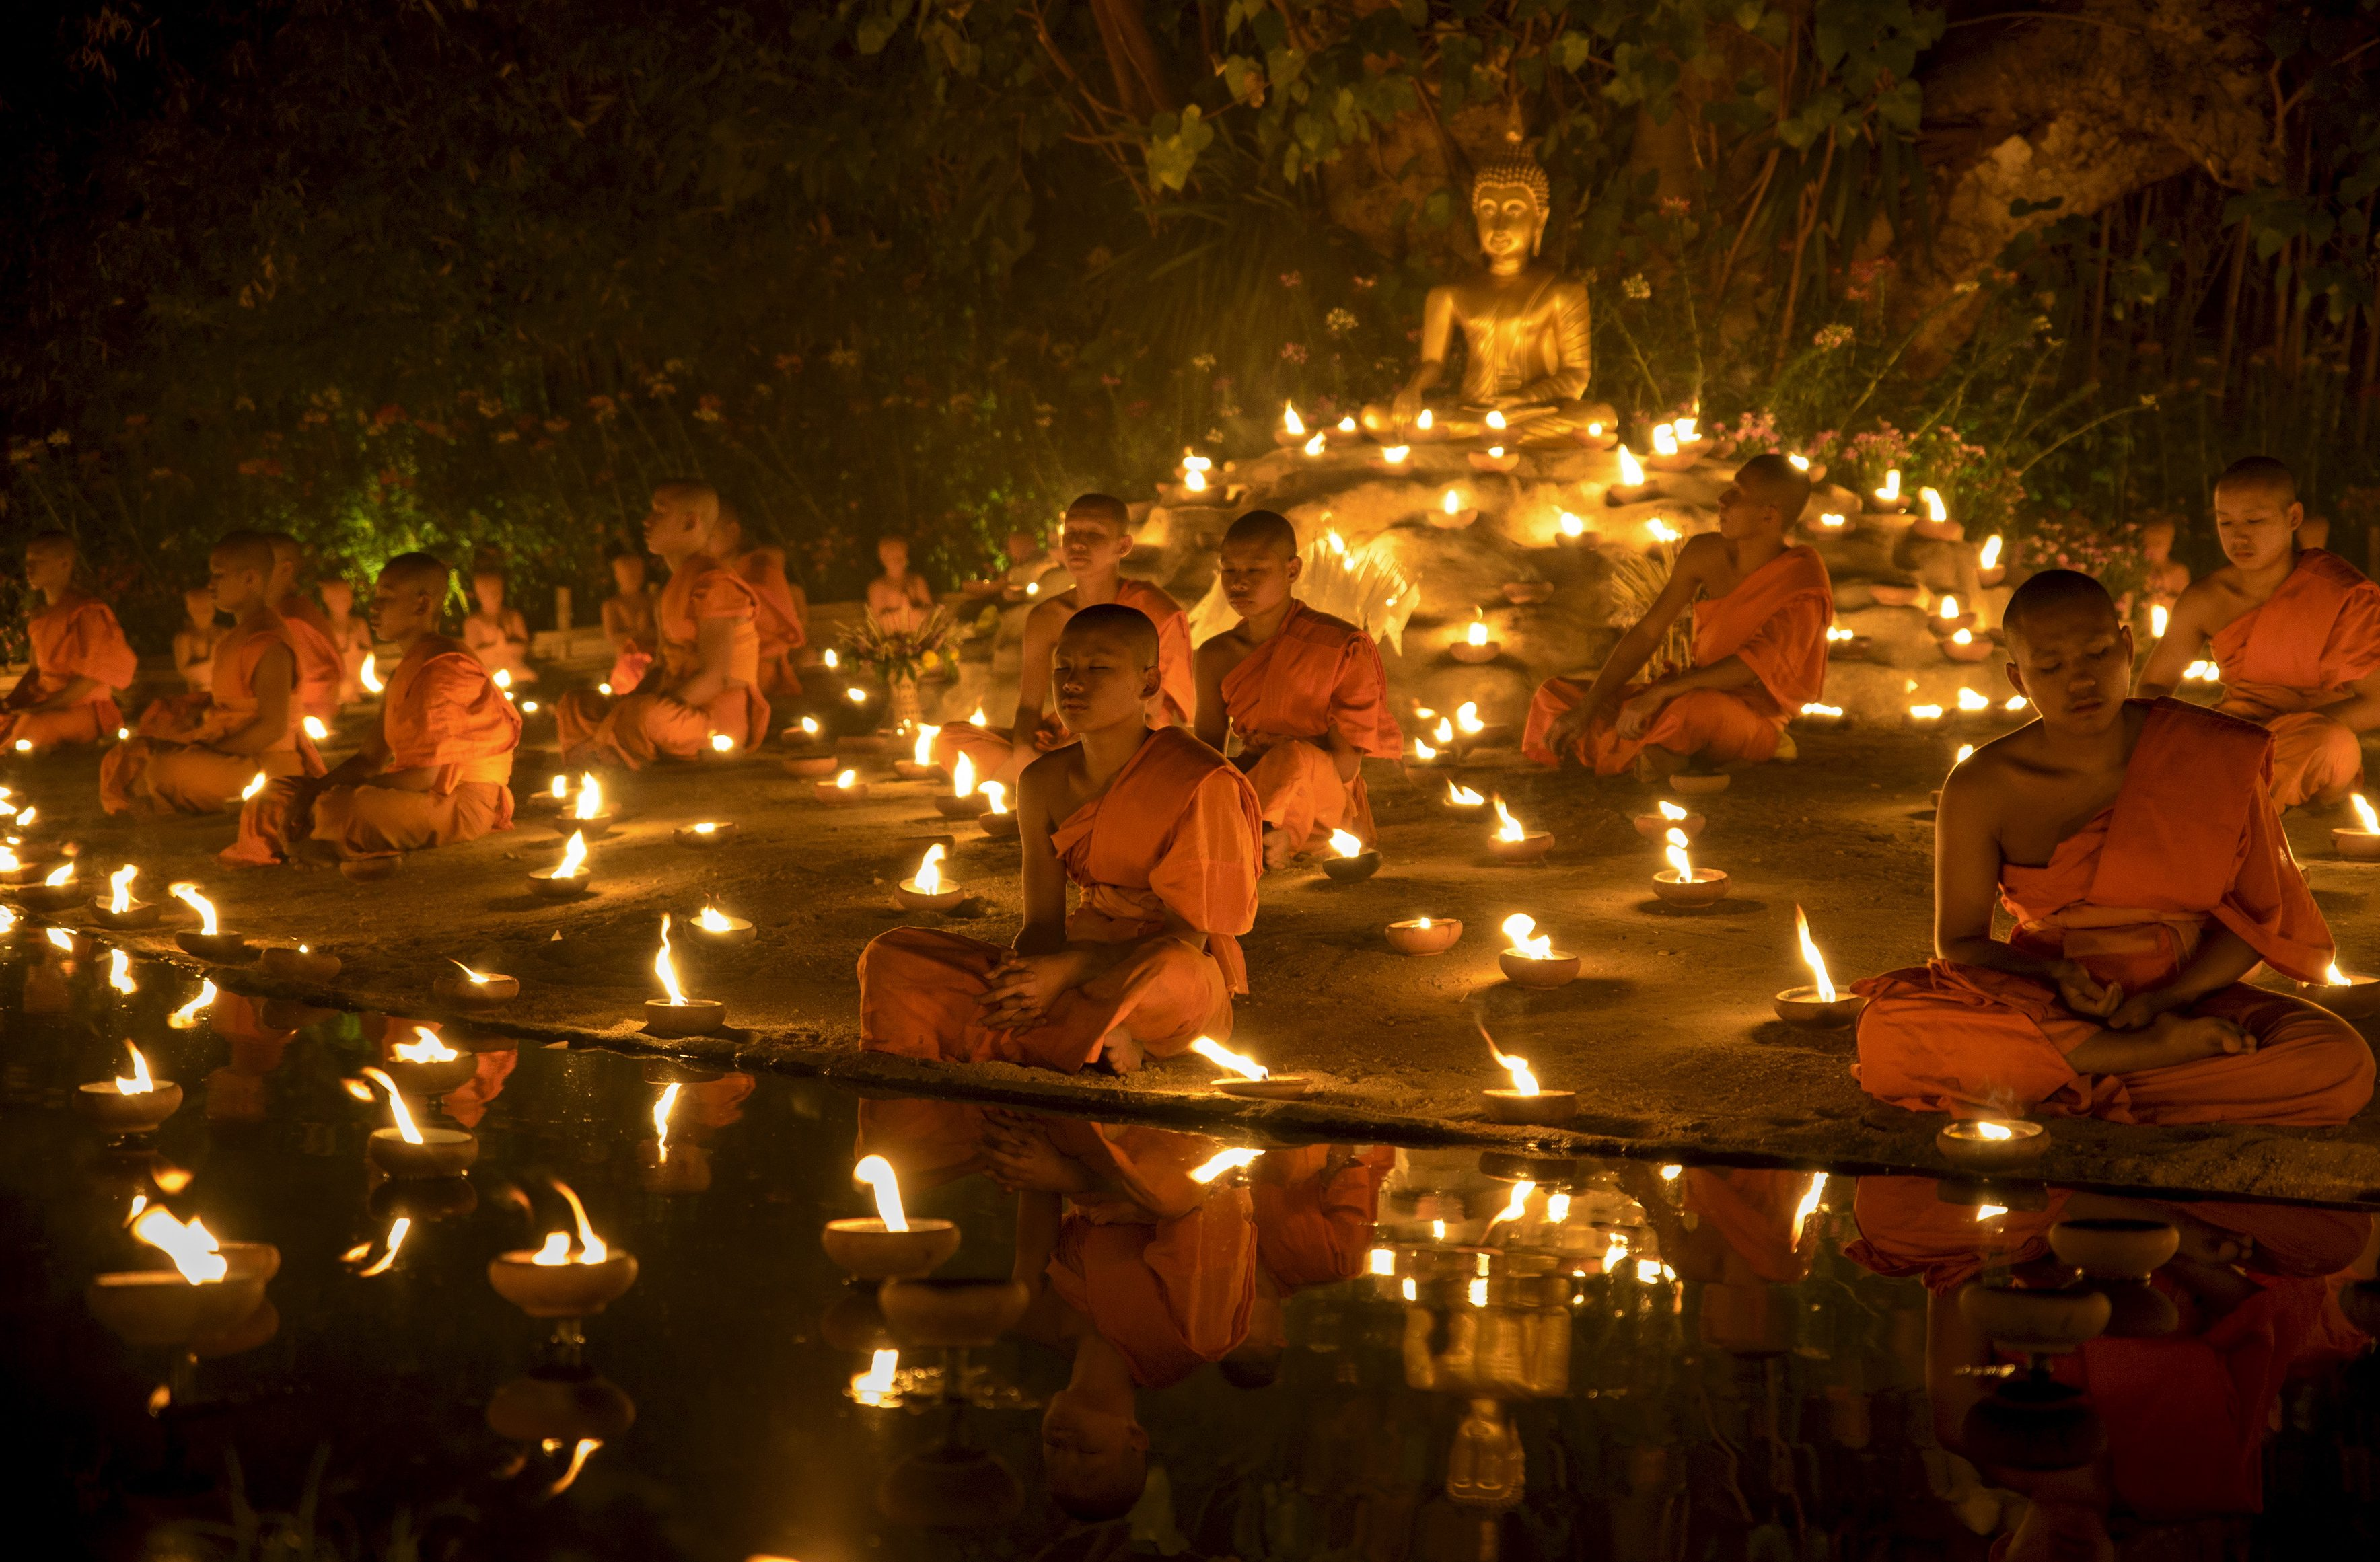 Buddhist monks meditate during Makha Bucha day at Wat Pan Tao in Chiang Mai, Thailand, February 22, 2016. Makha Bucha Day honours Buddha and his teachings, and falls on the full moon day of the third lunar month. REUTERS/Athit Perawongmetha - RTX281WJ